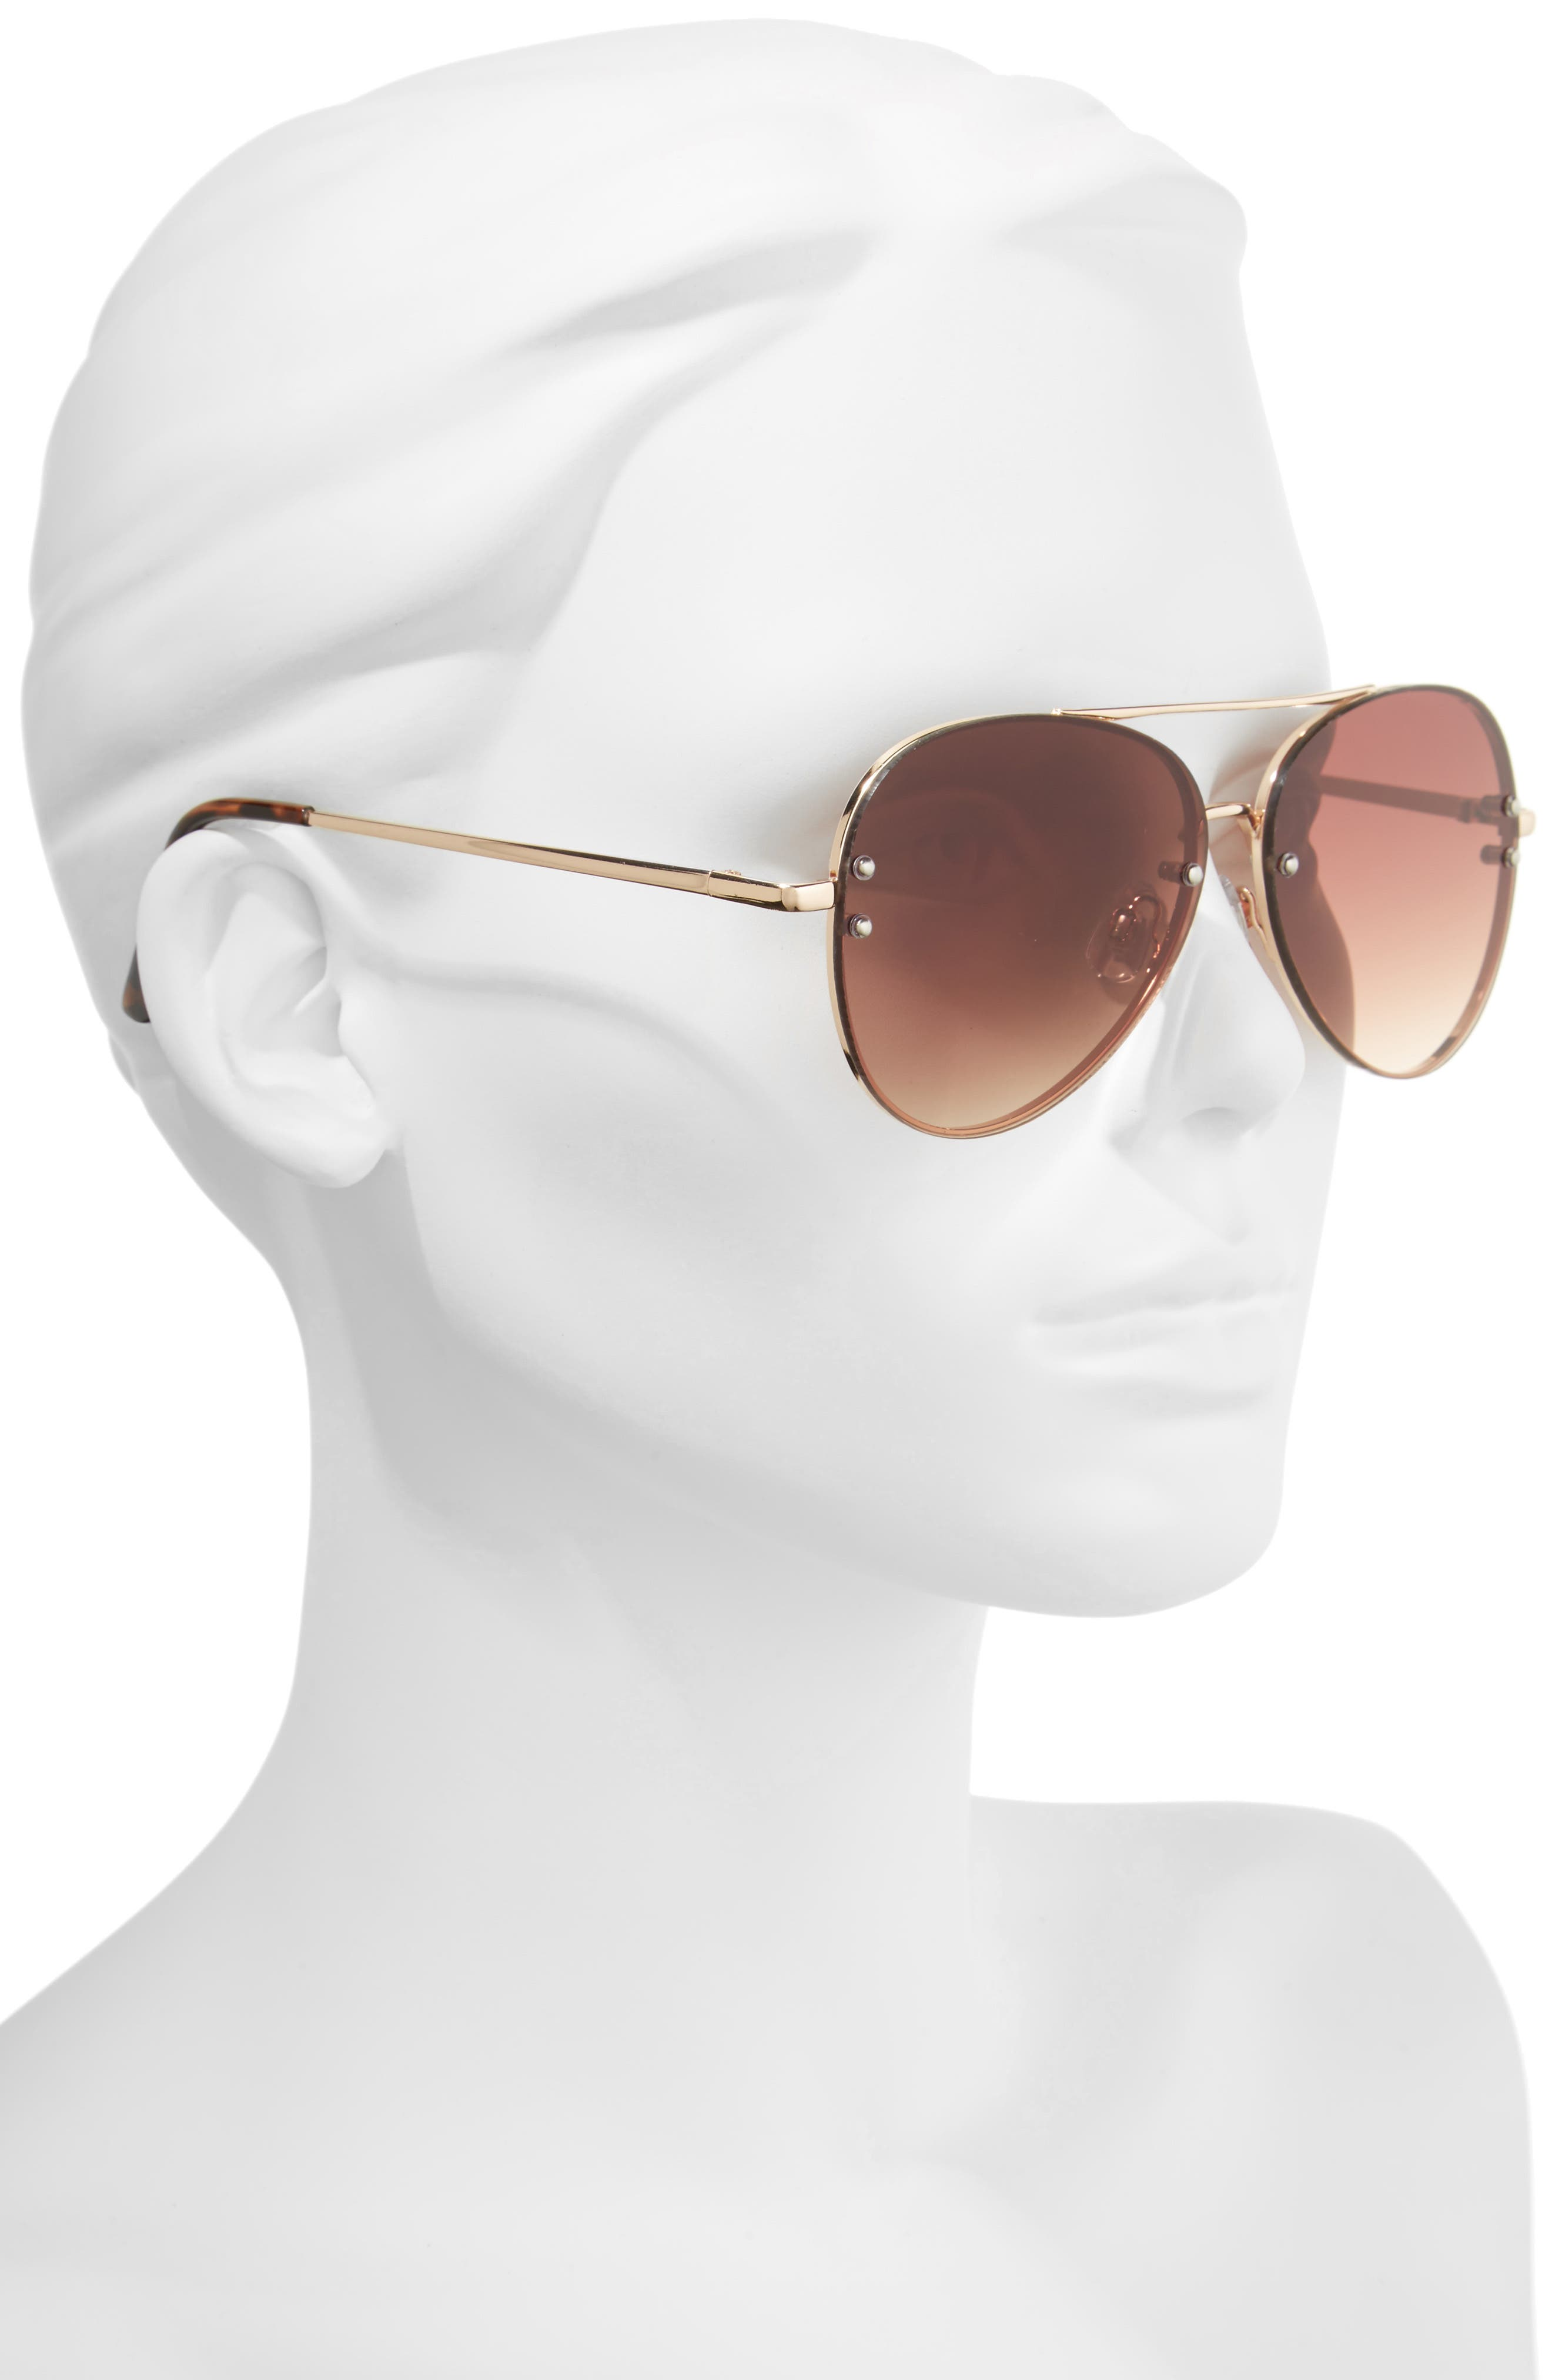 60mm Oversize Mirrored Aviator Sunglasses,                             Alternate thumbnail 2, color,                             GOLD/ BROWN